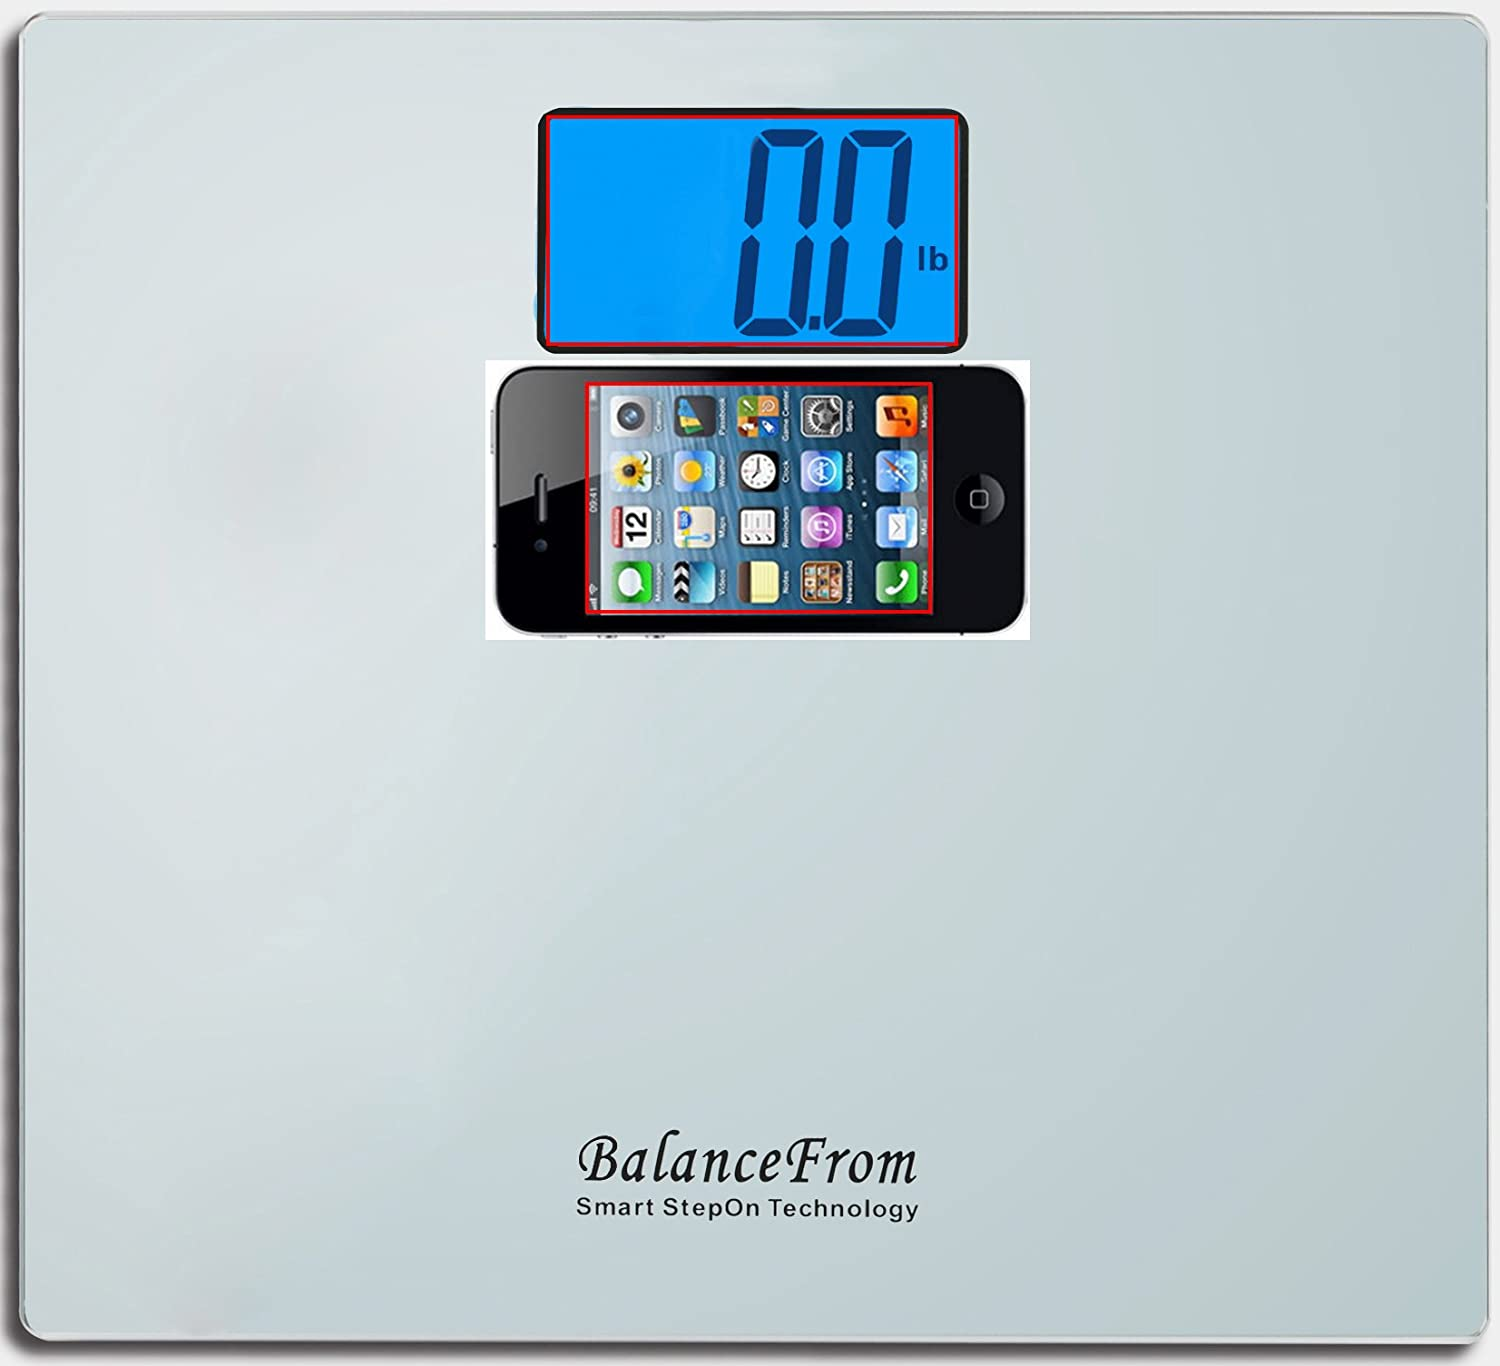 Amazoncom BalanceFrom High Accuracy Digital Bathroom Scale With - Large display digital bathroom scales for bathroom decor ideas